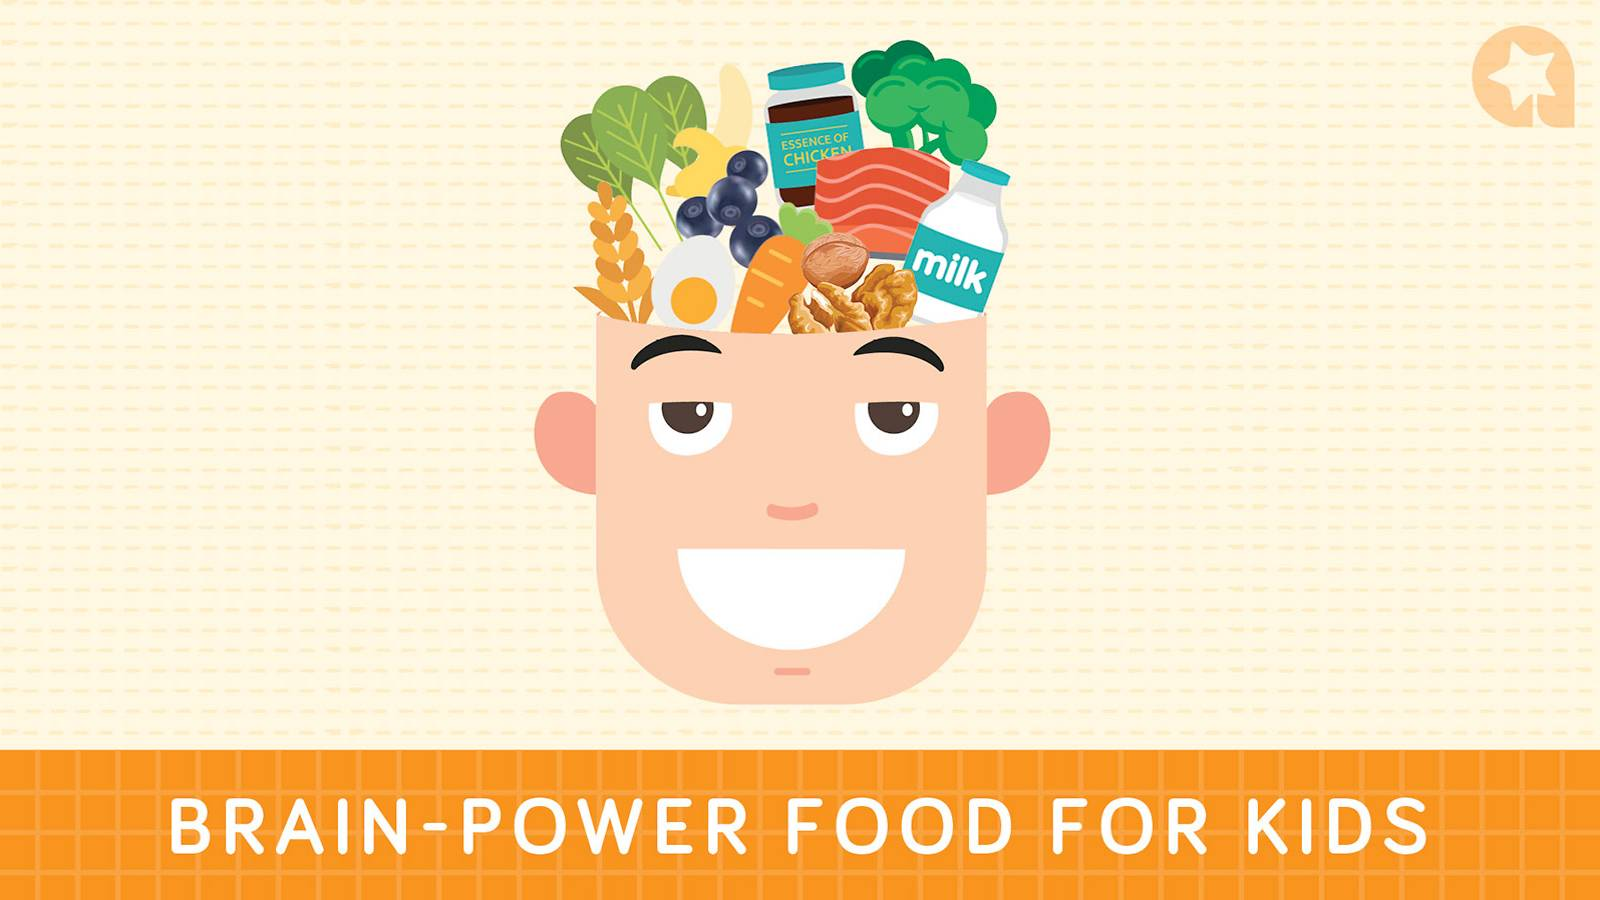 Acing-PSLE-Eat-These-Foods-Infographic-CONTENTCARD